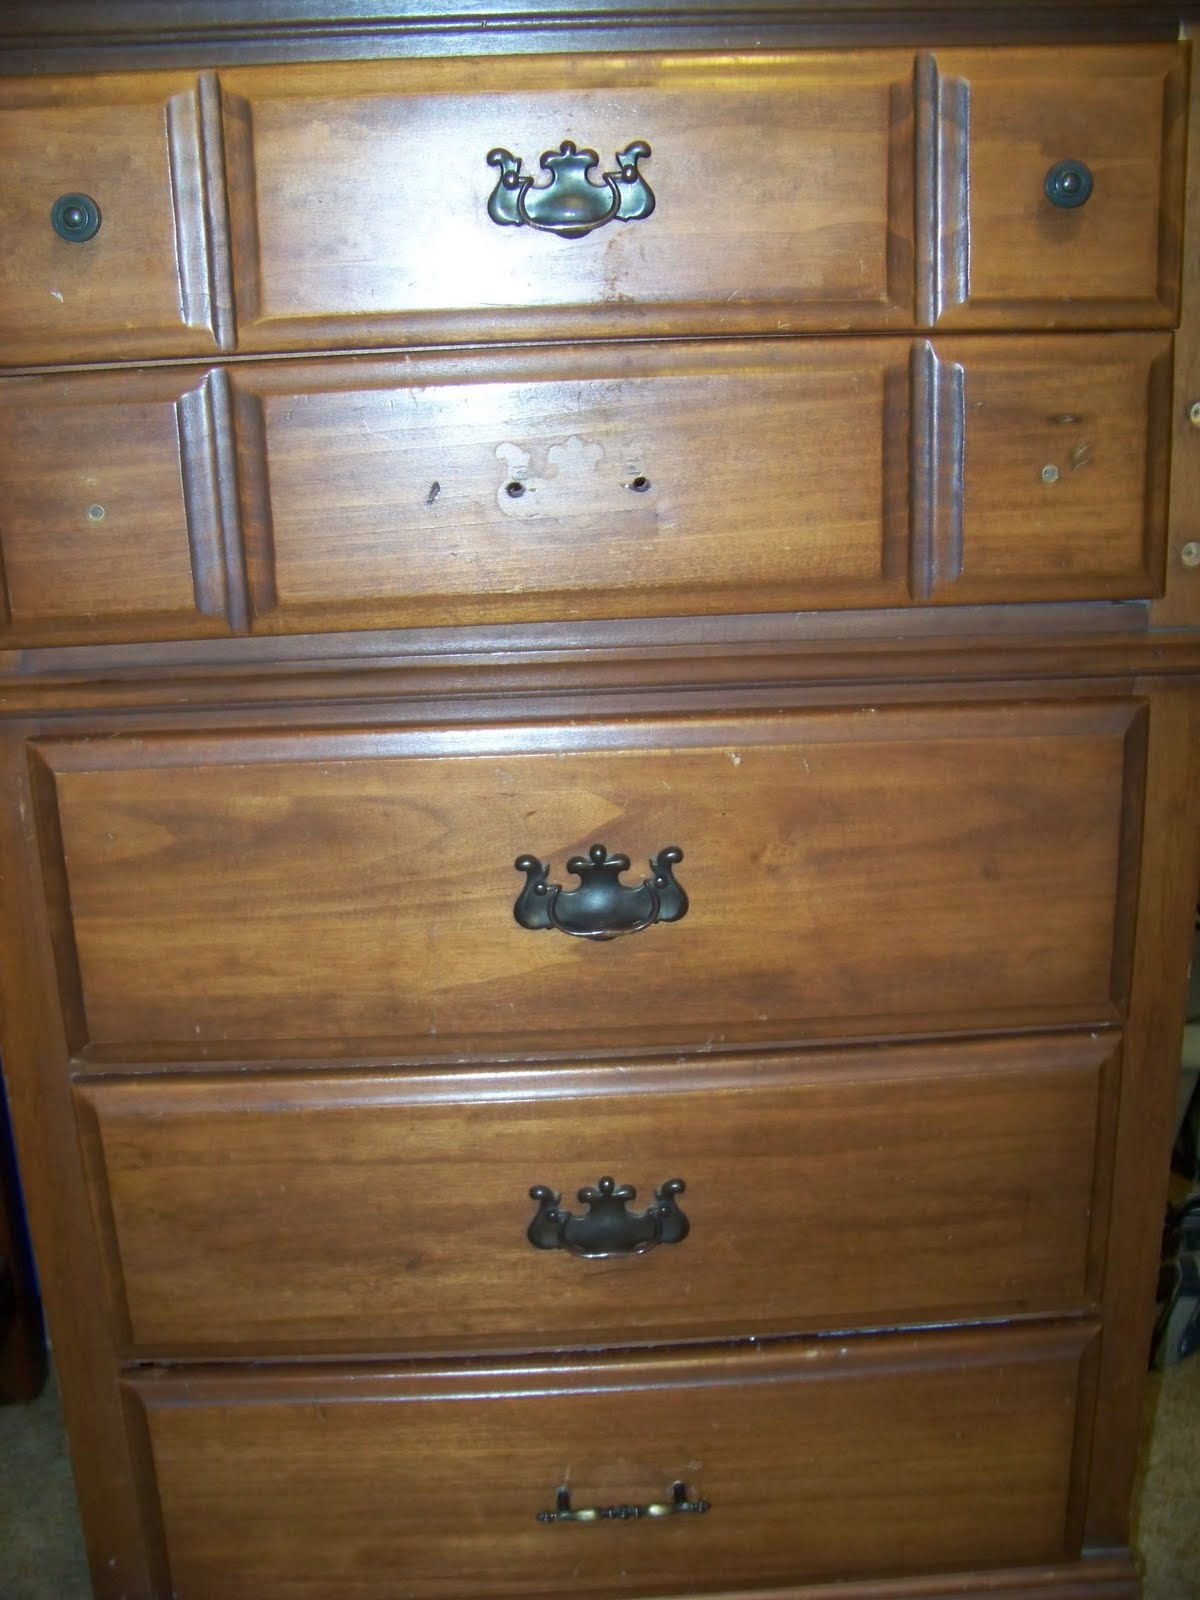 bedroom furniture makeover. The Wood Is Scratched And Hardware Missing. Bedroom Furniture Makeover O